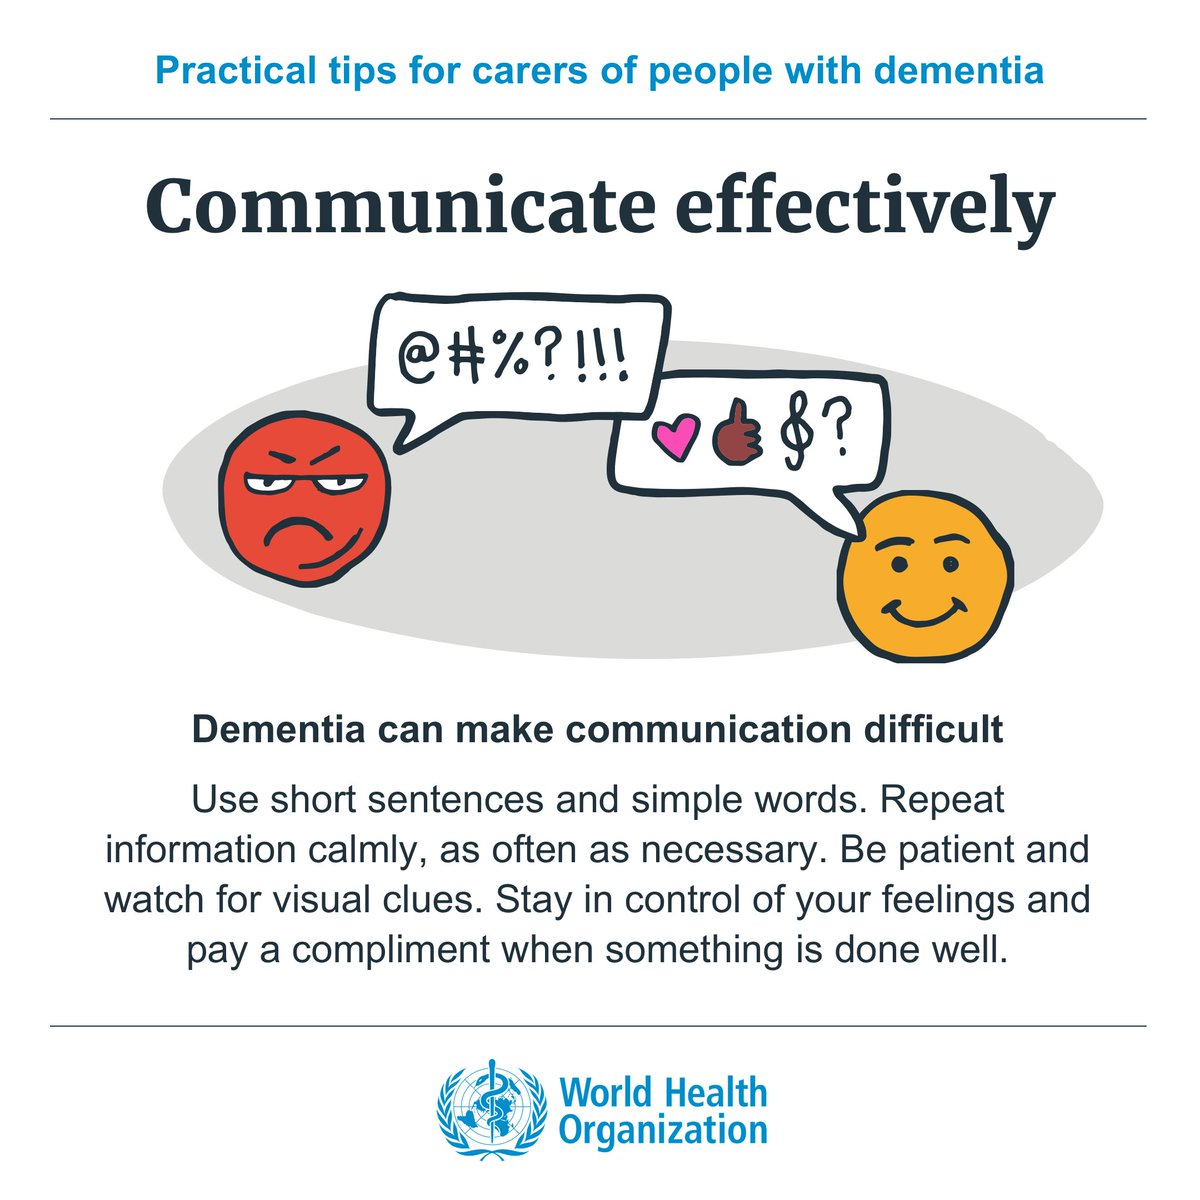 Q: How can I communicate effectively with the person with #dementia? A: Dementia can often make communication difficult. Get attention in a respectful way https://t.co/0UC7ieHW70  #MentalHealth https://t.co/Tkg0NeA0W4